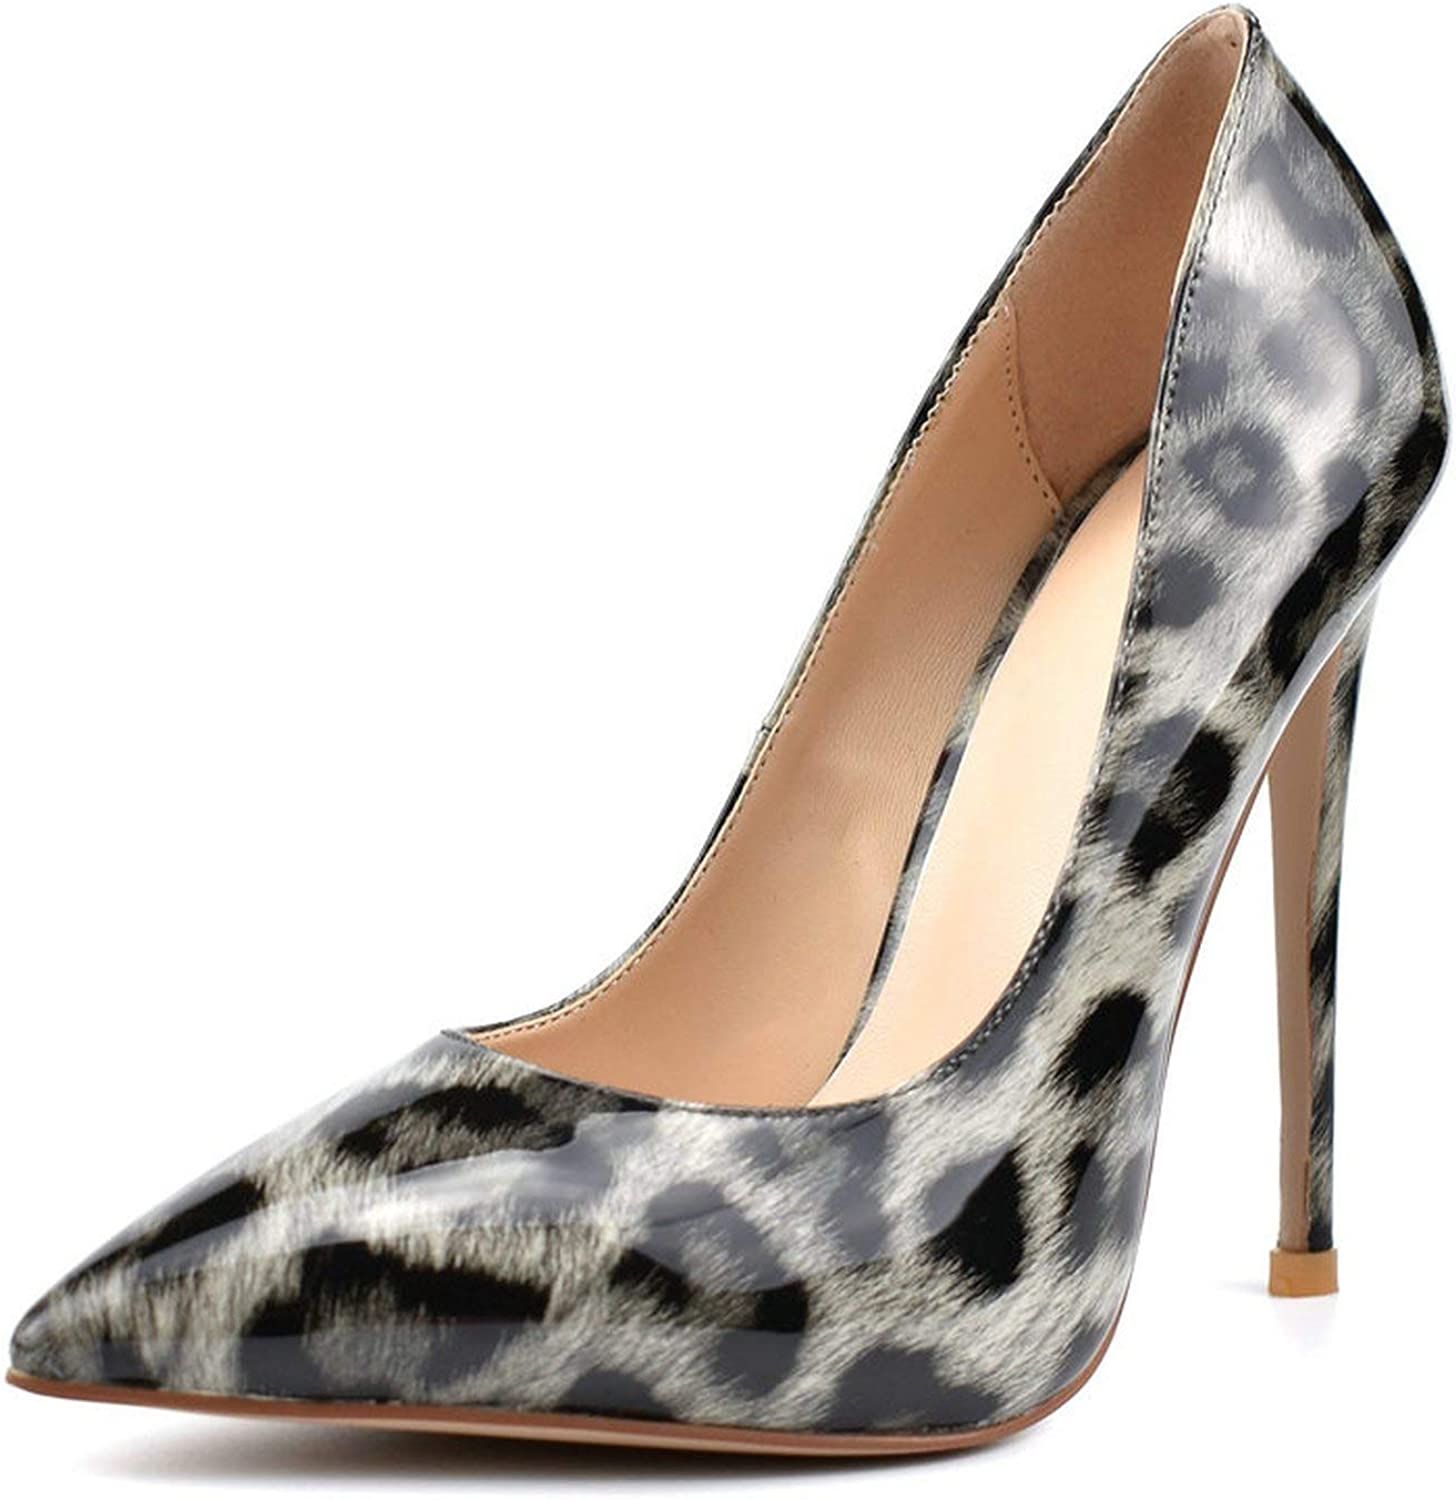 Get-in Woman High Heels 12CM Heels Pumps Women shoes Sexy Black bluee Party Wedding shoes Stiletto